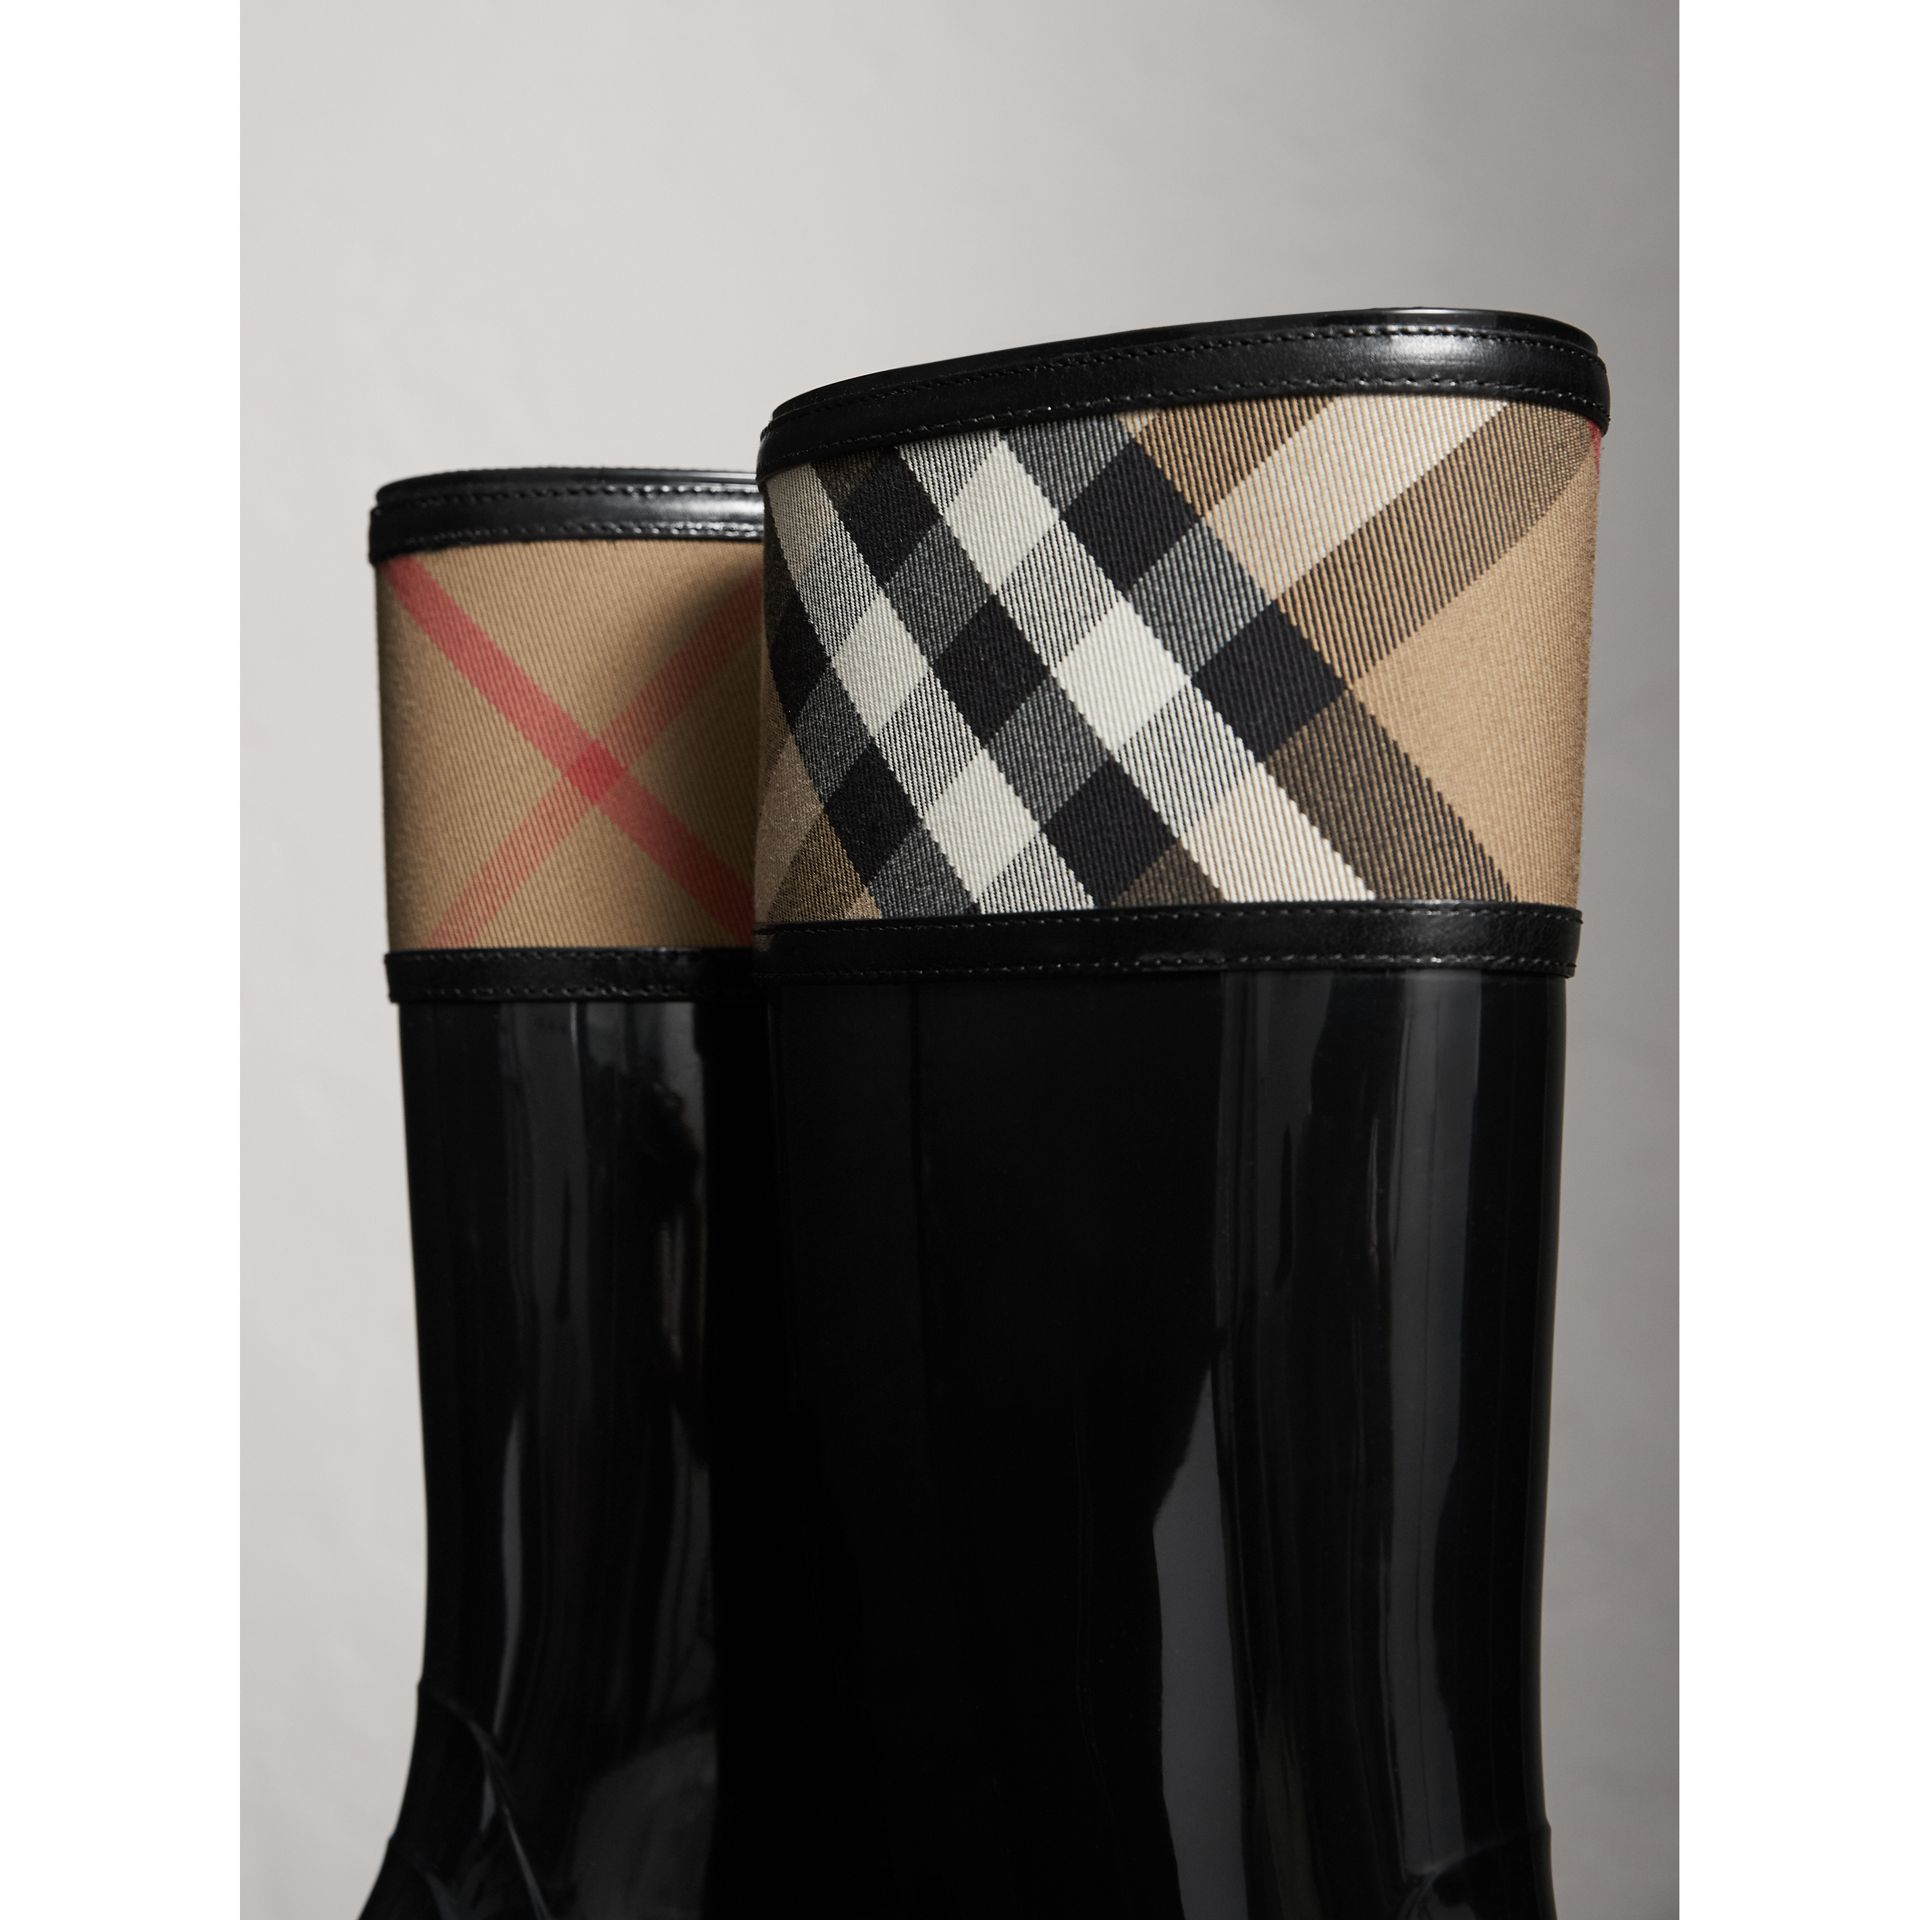 Regenstiefel in House Check (Schwarz) - Damen | Burberry - Galerie-Bild 1